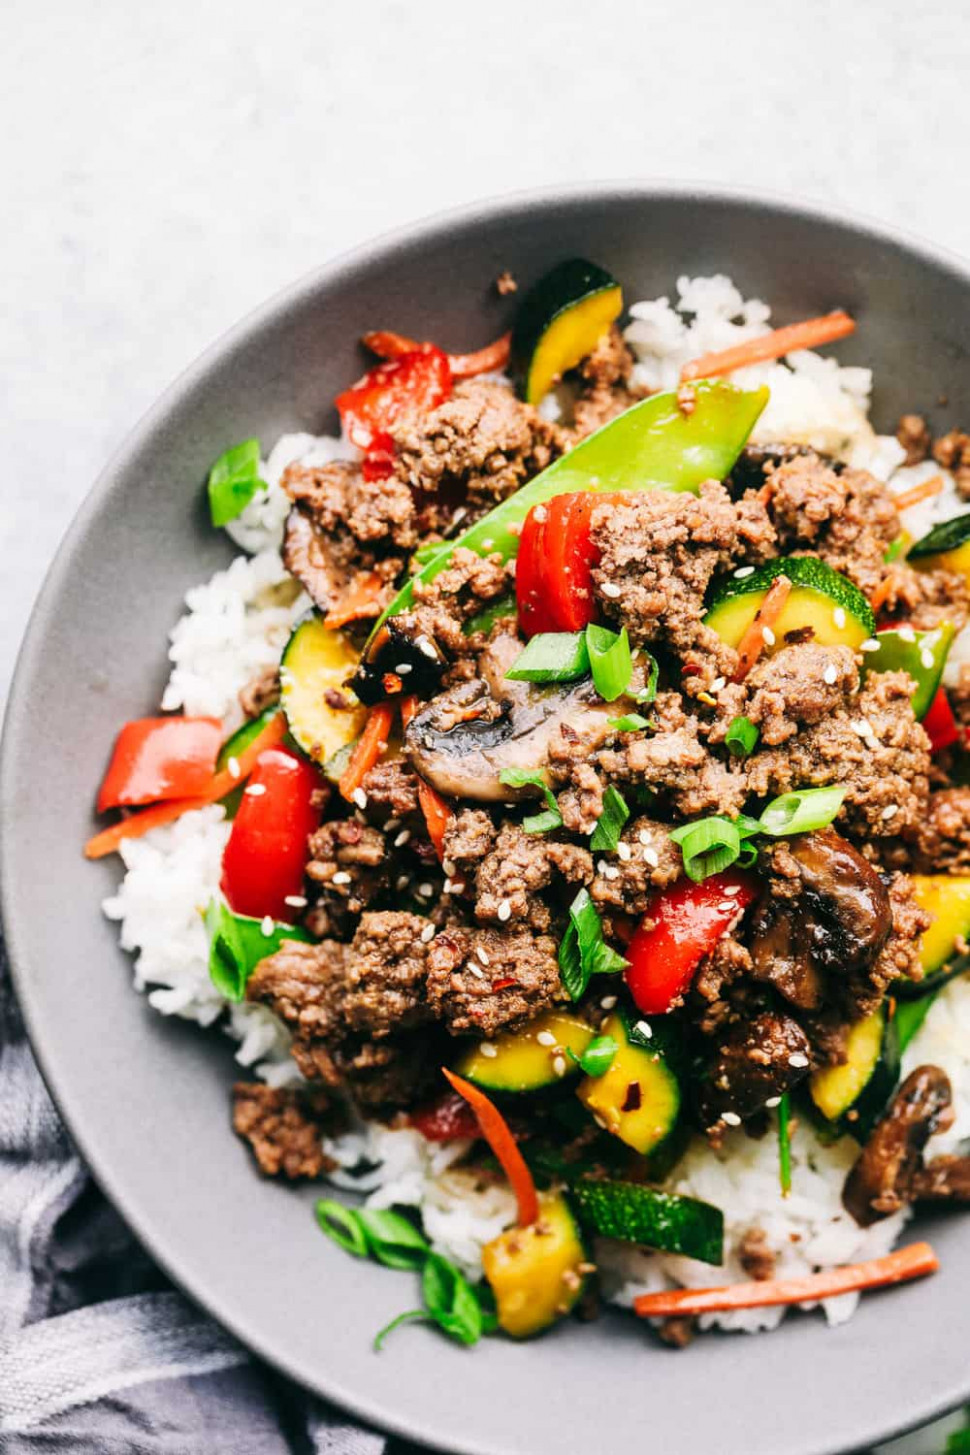 Korean Ground Beef Stir Fry - recipes for ground beef healthy